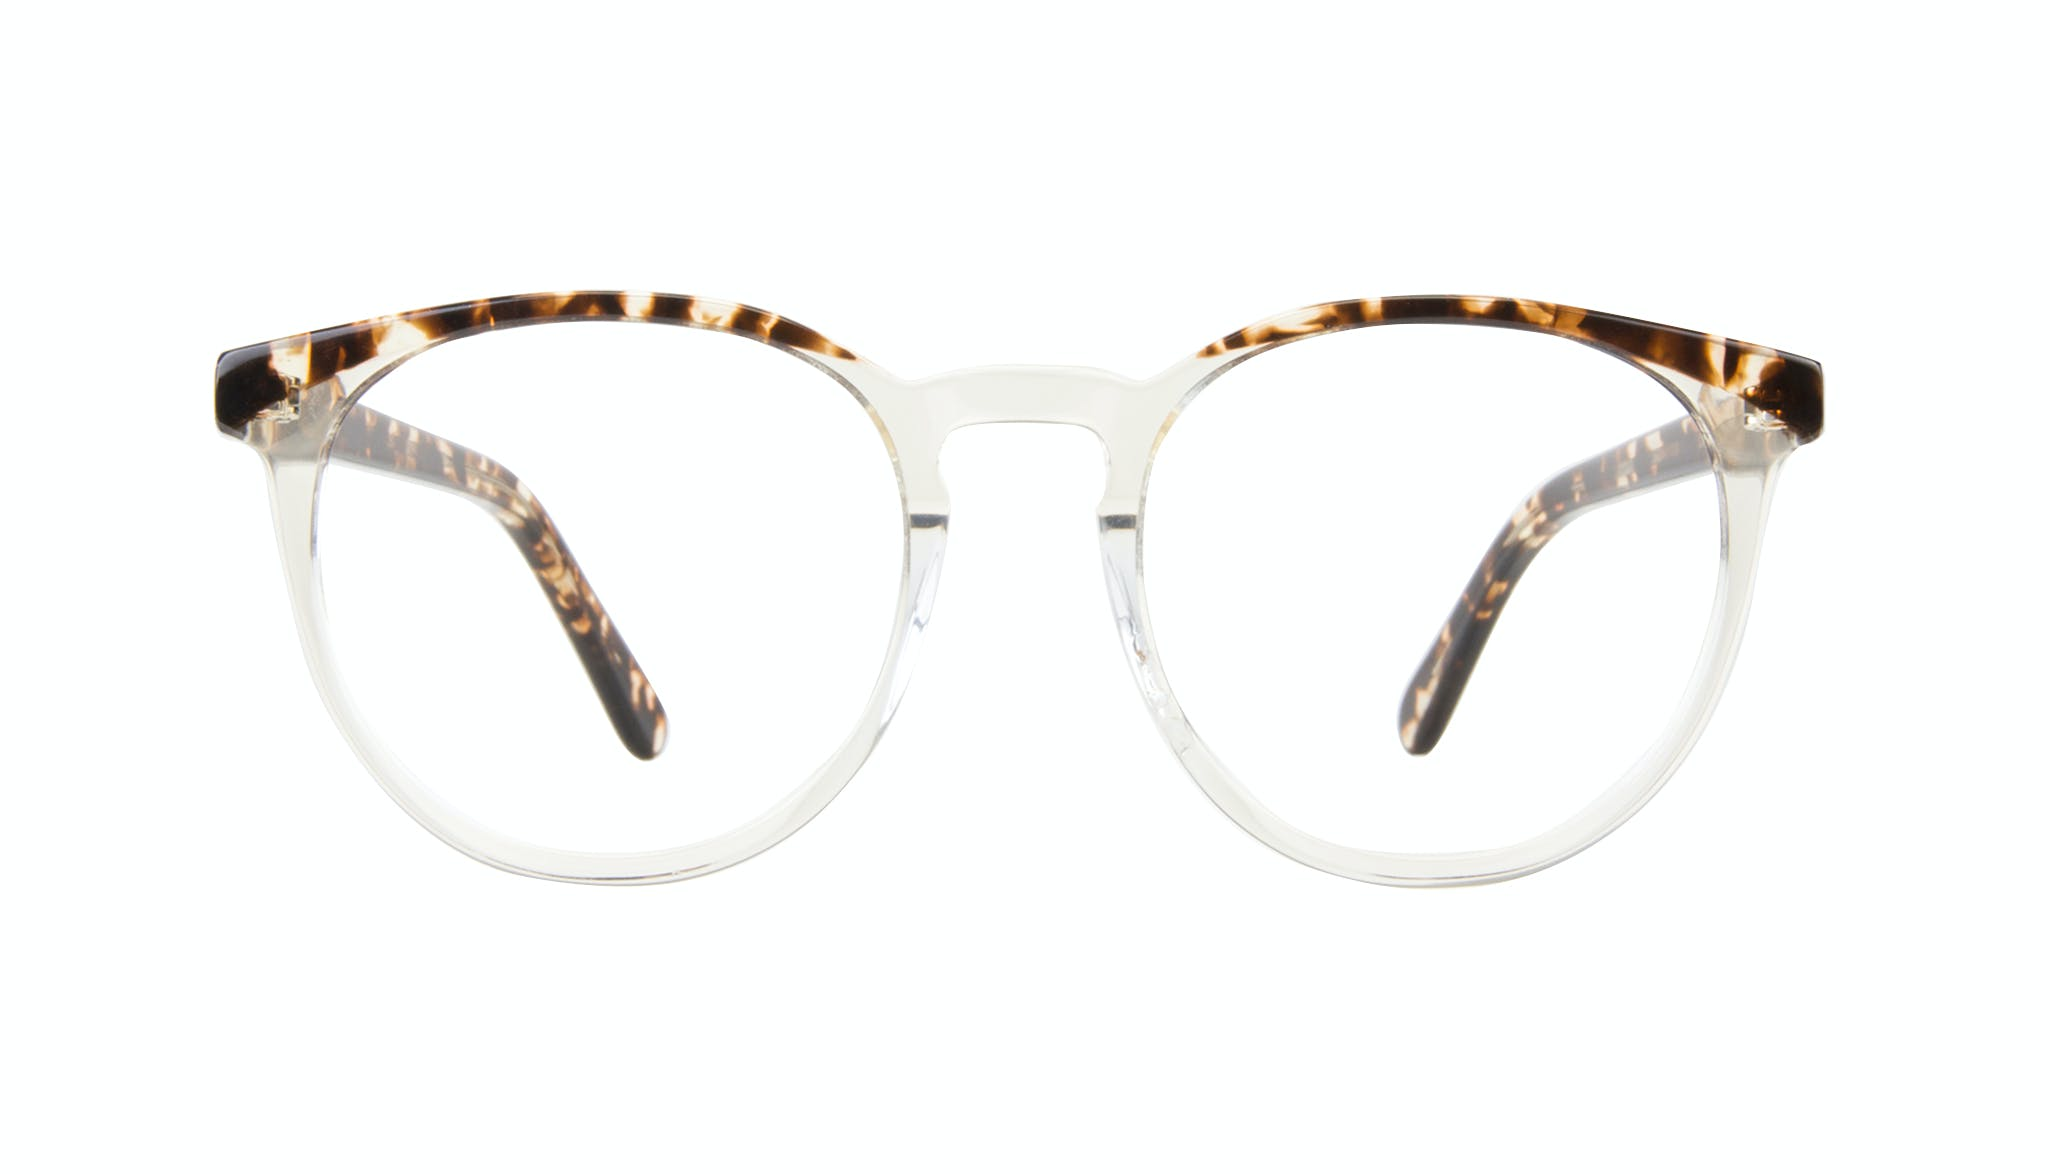 Affordable Fashion Glasses Round Eyeglasses Women Brilliant Blond Tortoise Front